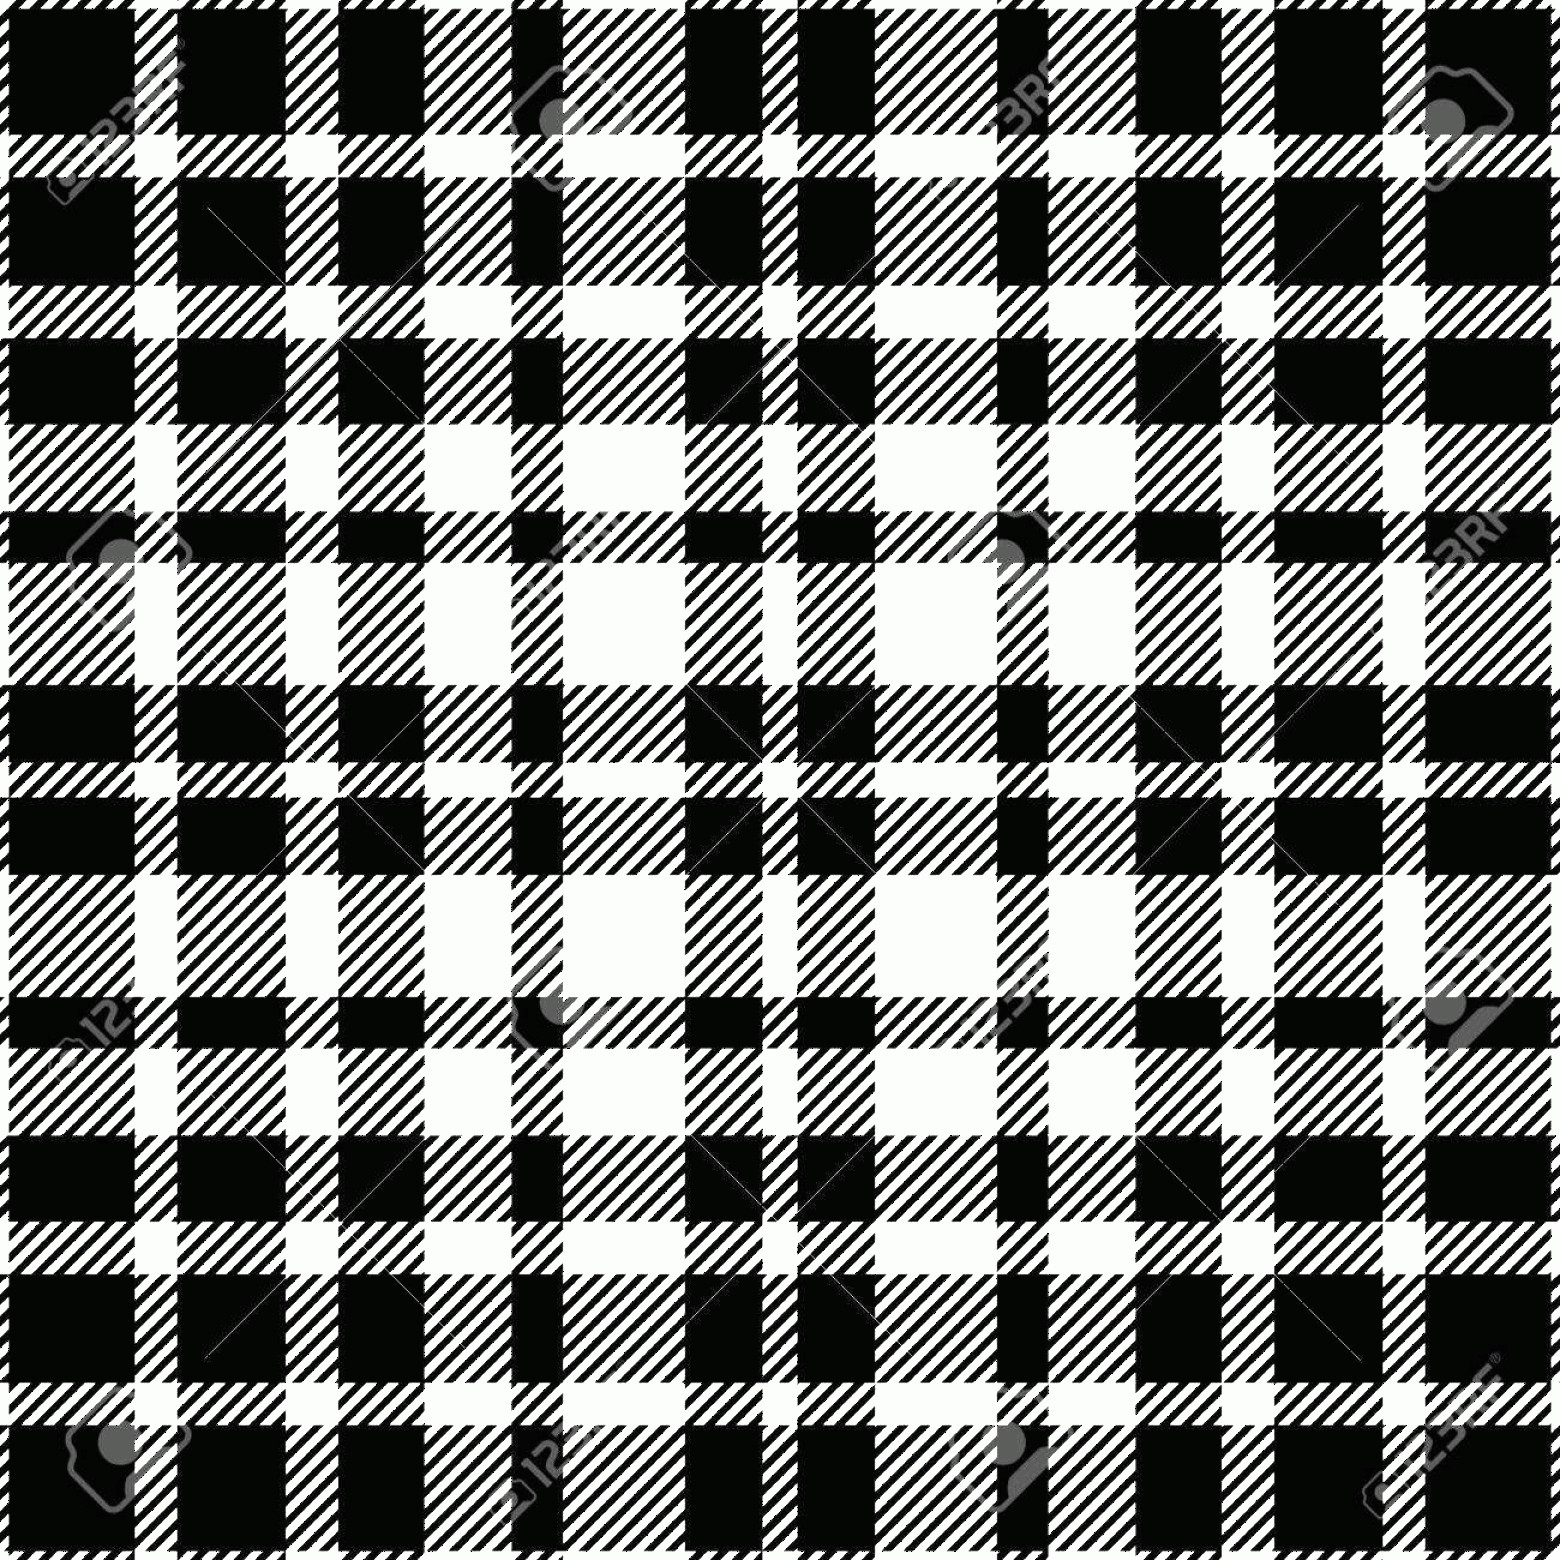 Plaid Vector: Photostock Vector Seamless Tartan Plaid Pattern In Black And White